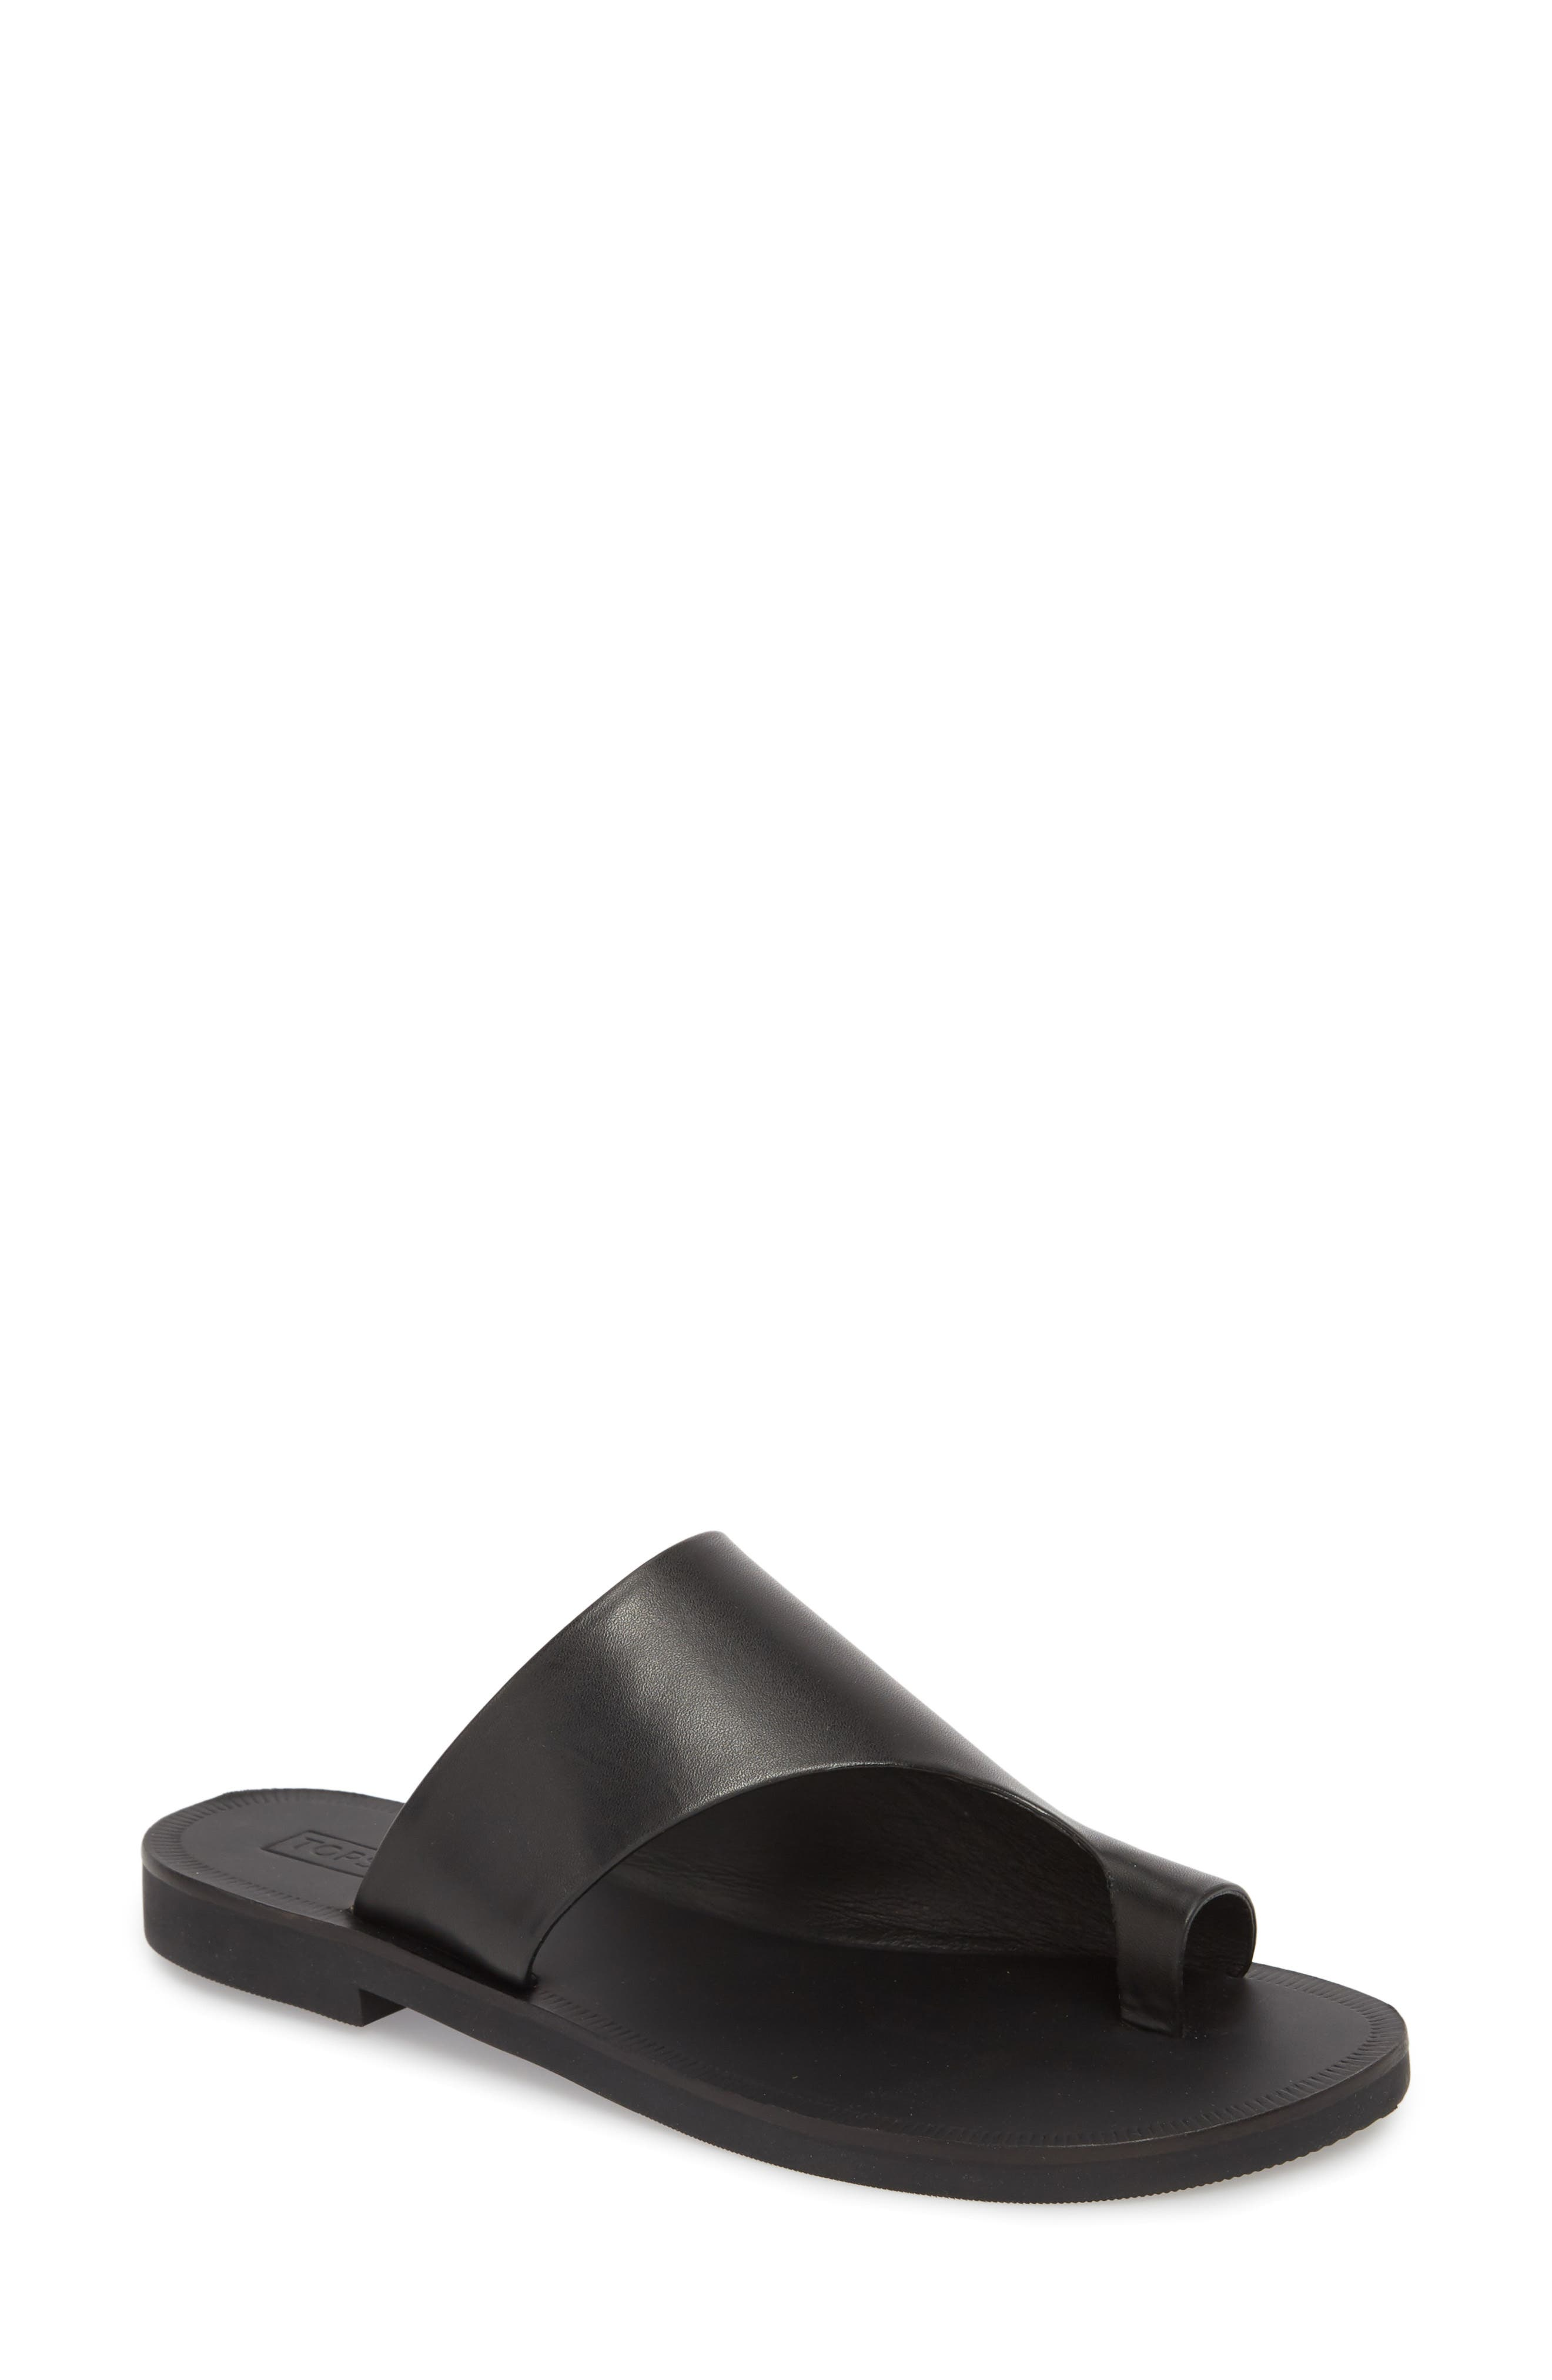 Florence Toe Post Sandal,                         Main,                         color, 001